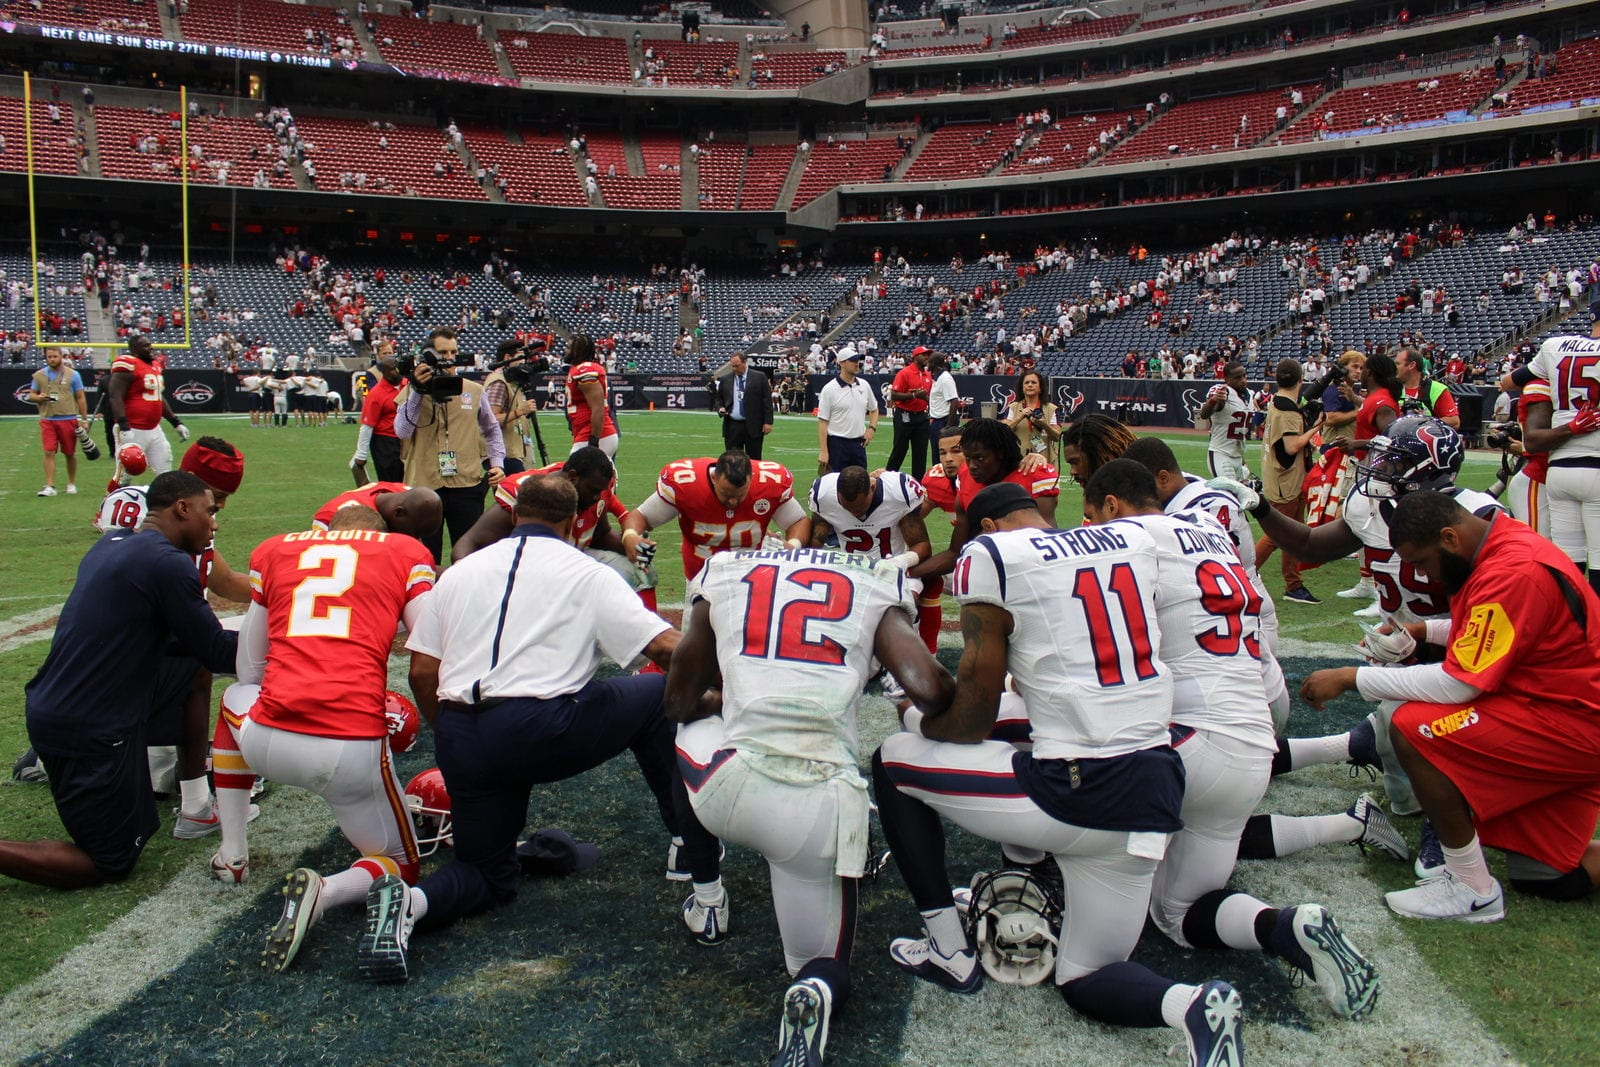 NFL: Several players kneel for anthem, some teams stay in ...